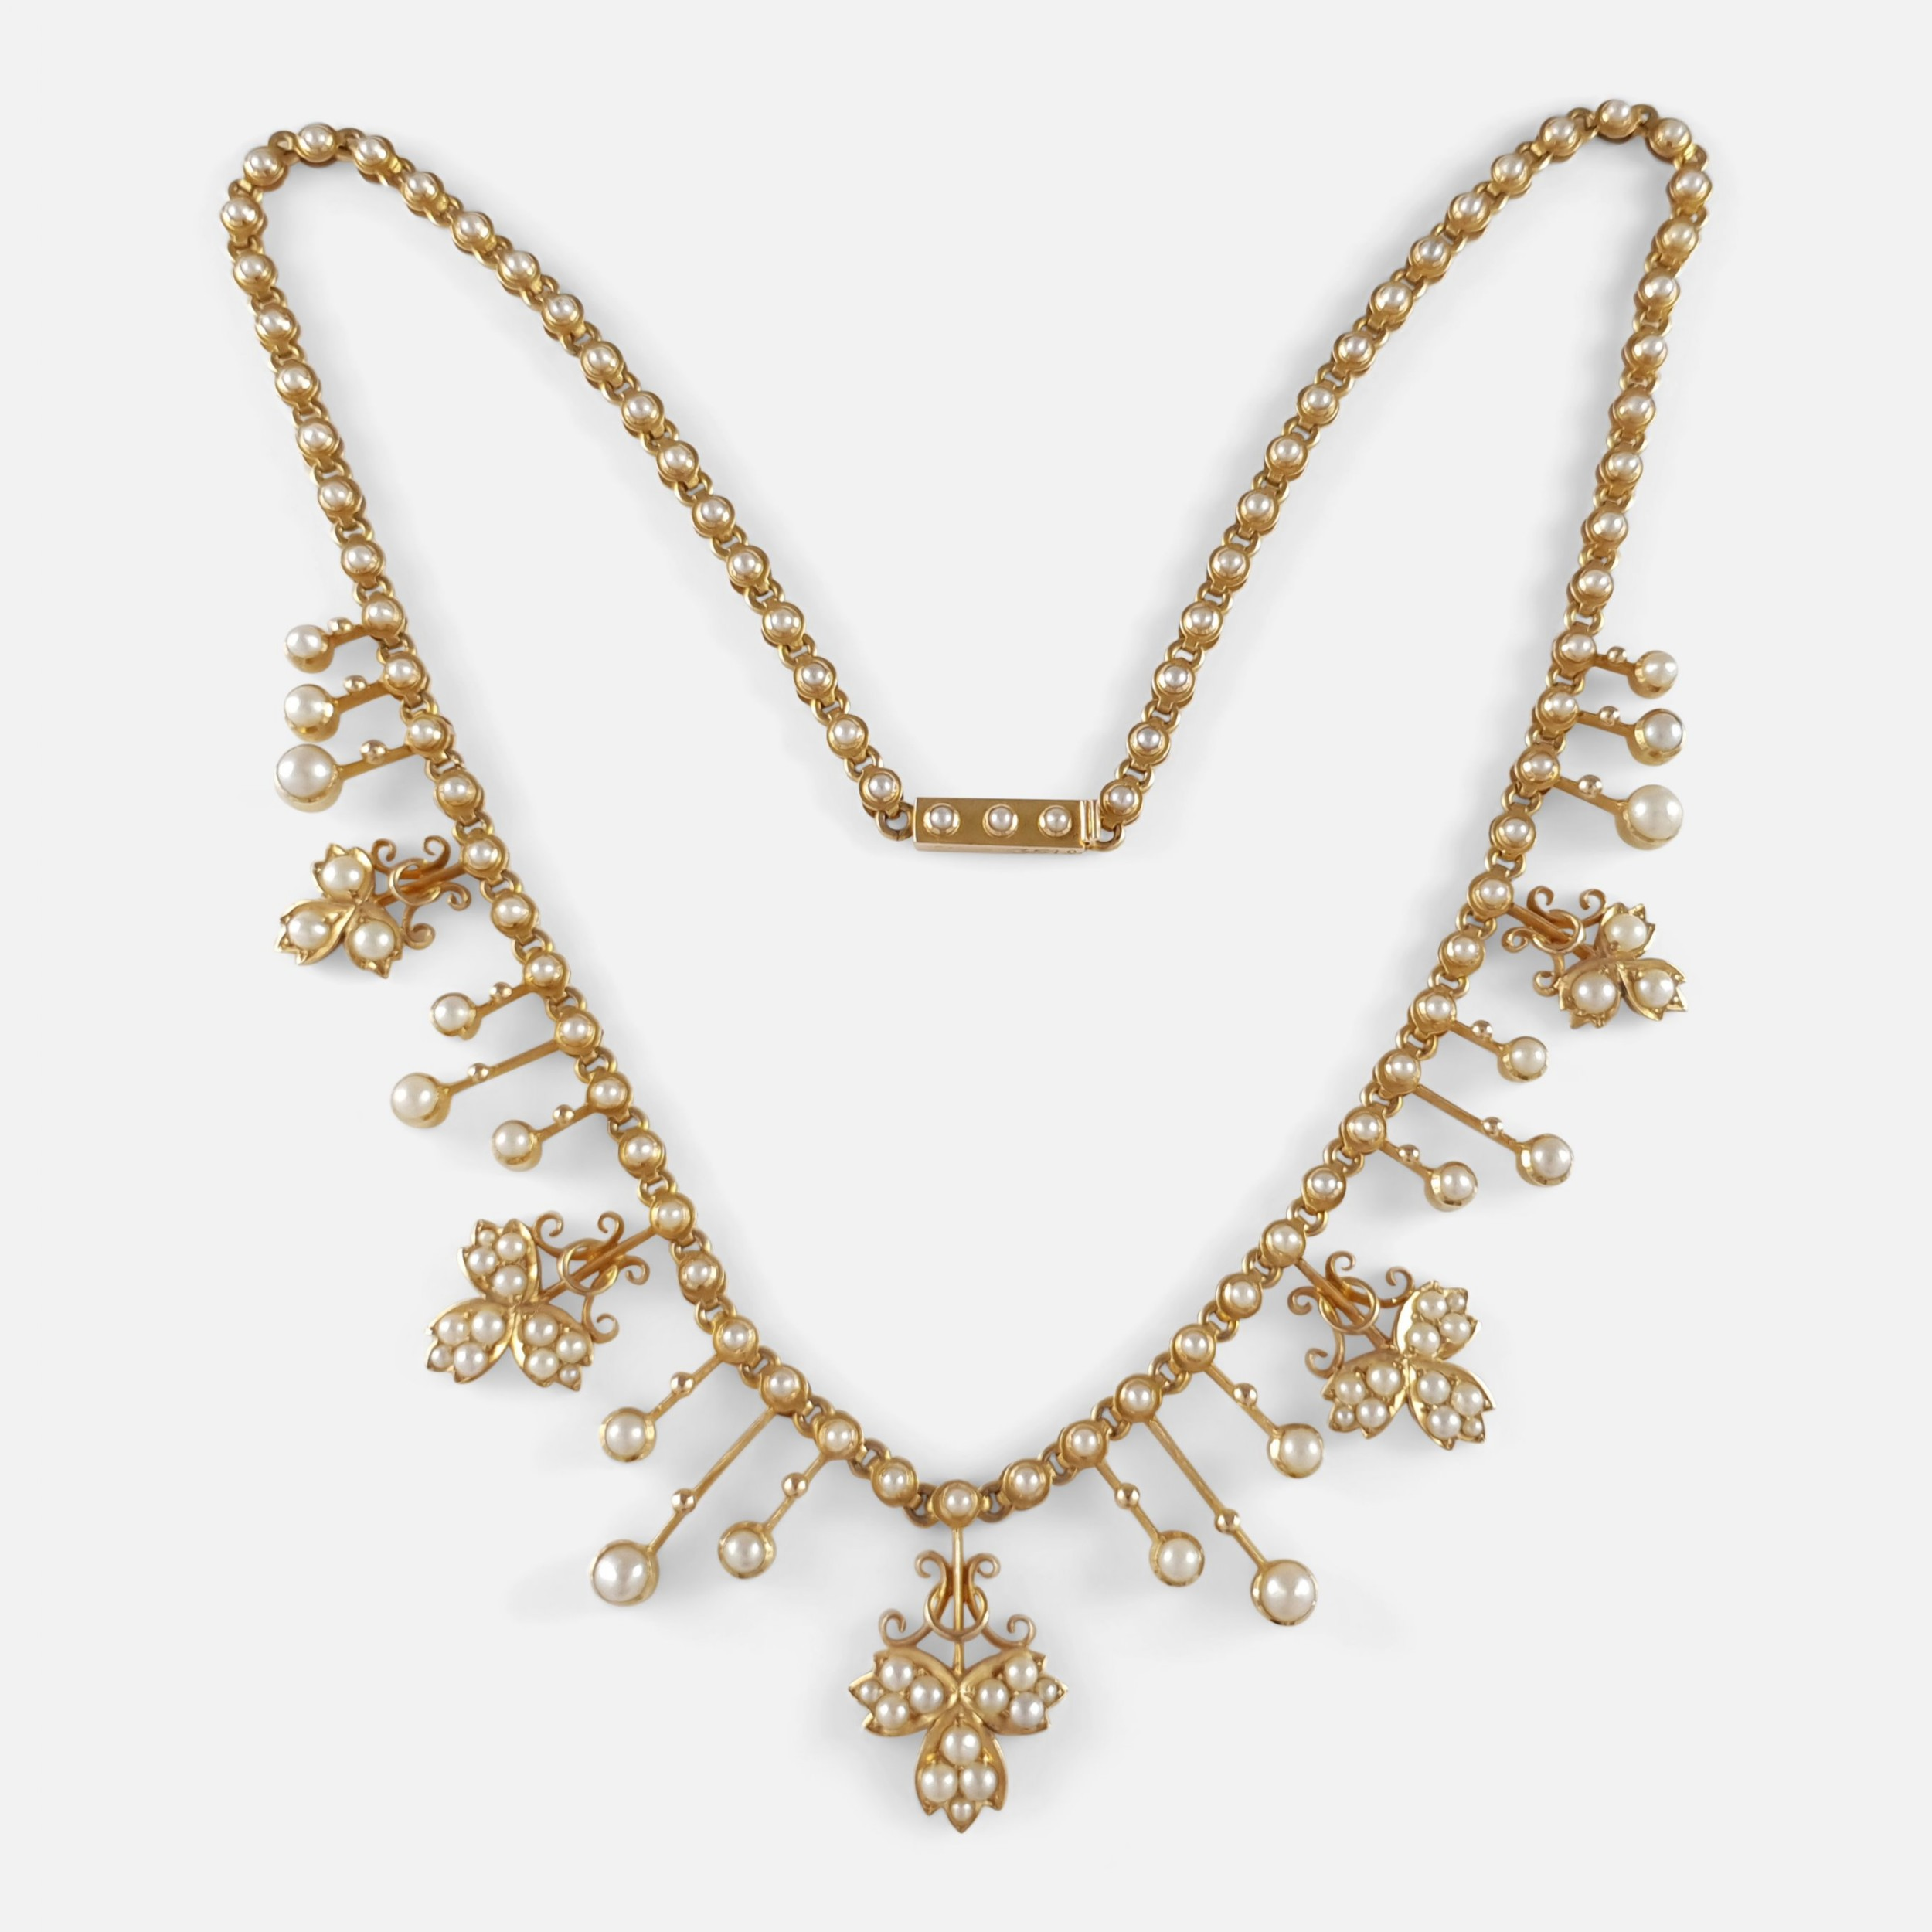 edwardian 15ct yellow gold seed pearl fringe and foliate necklace circa 1905